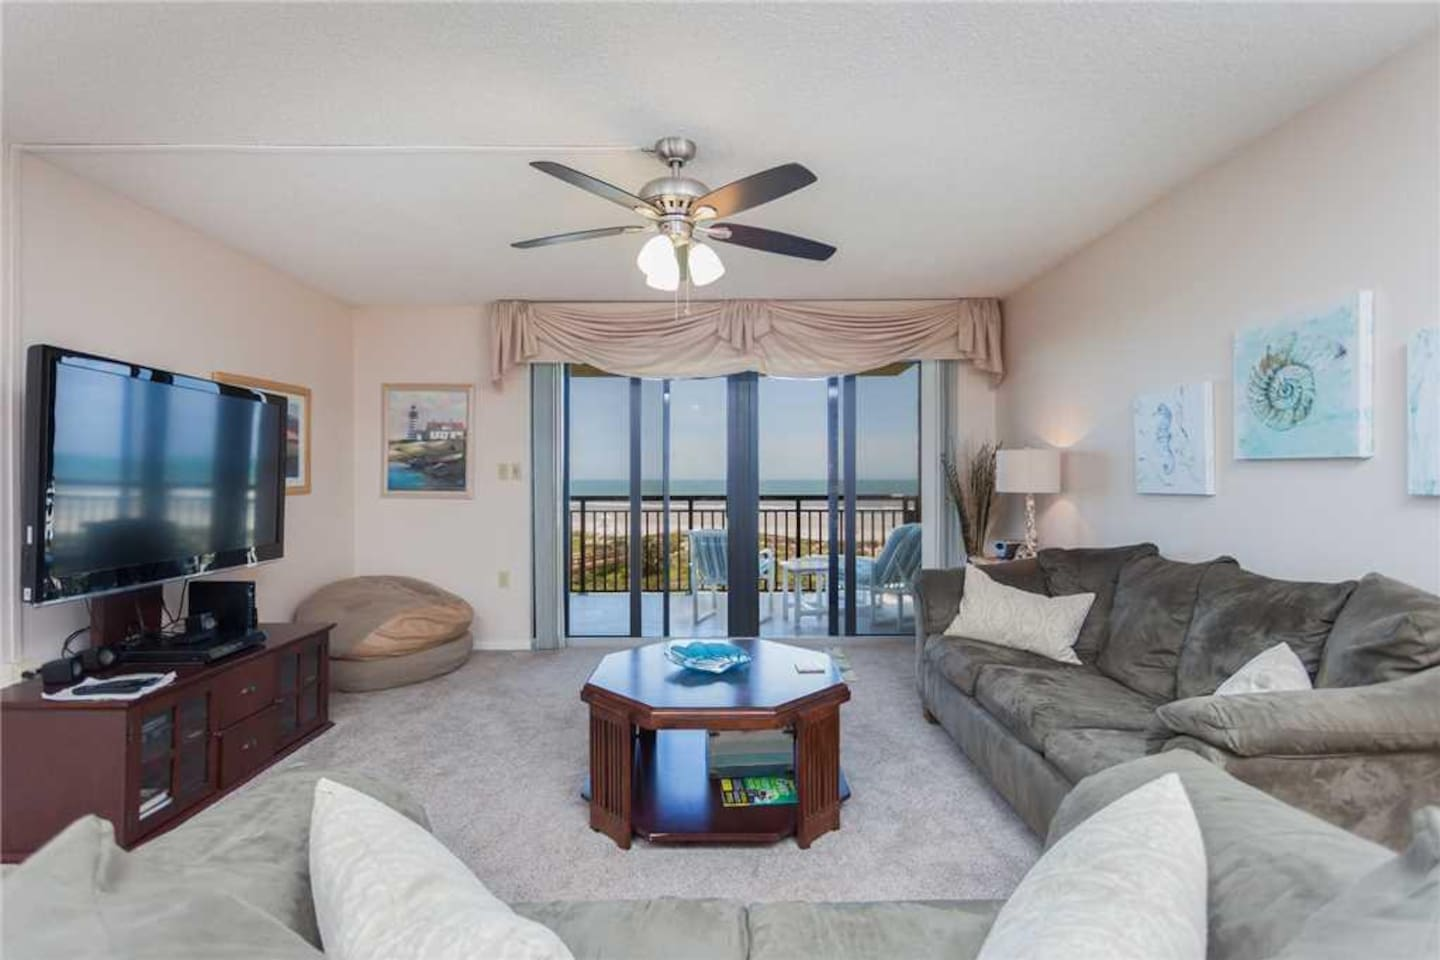 Welcome to Barefoot Trace 315! - The living room provides quick and easy access to the balcony where you can sit and enjoy the co